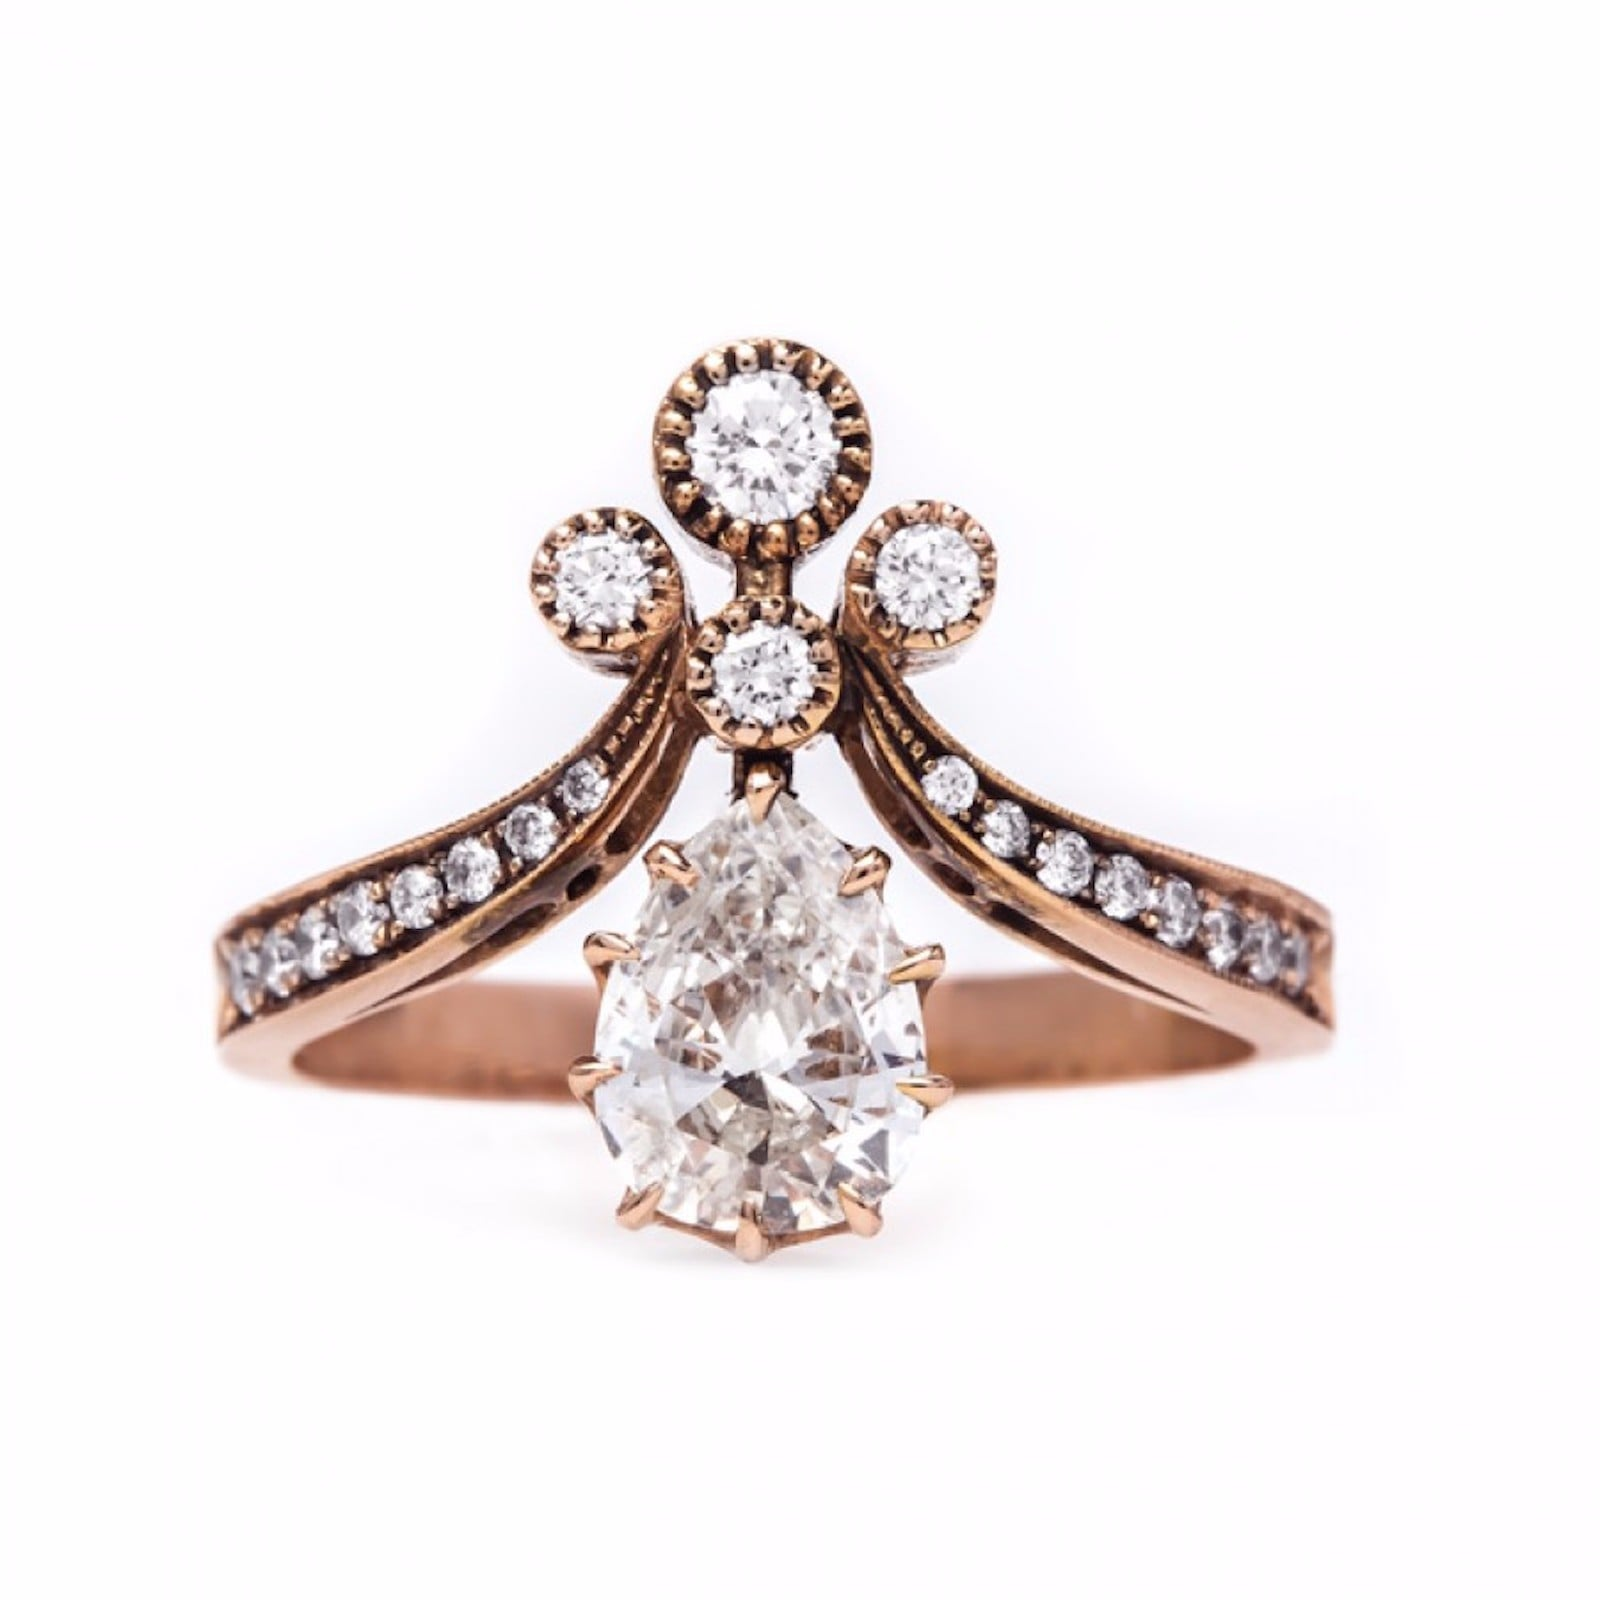 rings rock learn you know non amp traditional diamond engagement alternatives did wedding gem nontraditional